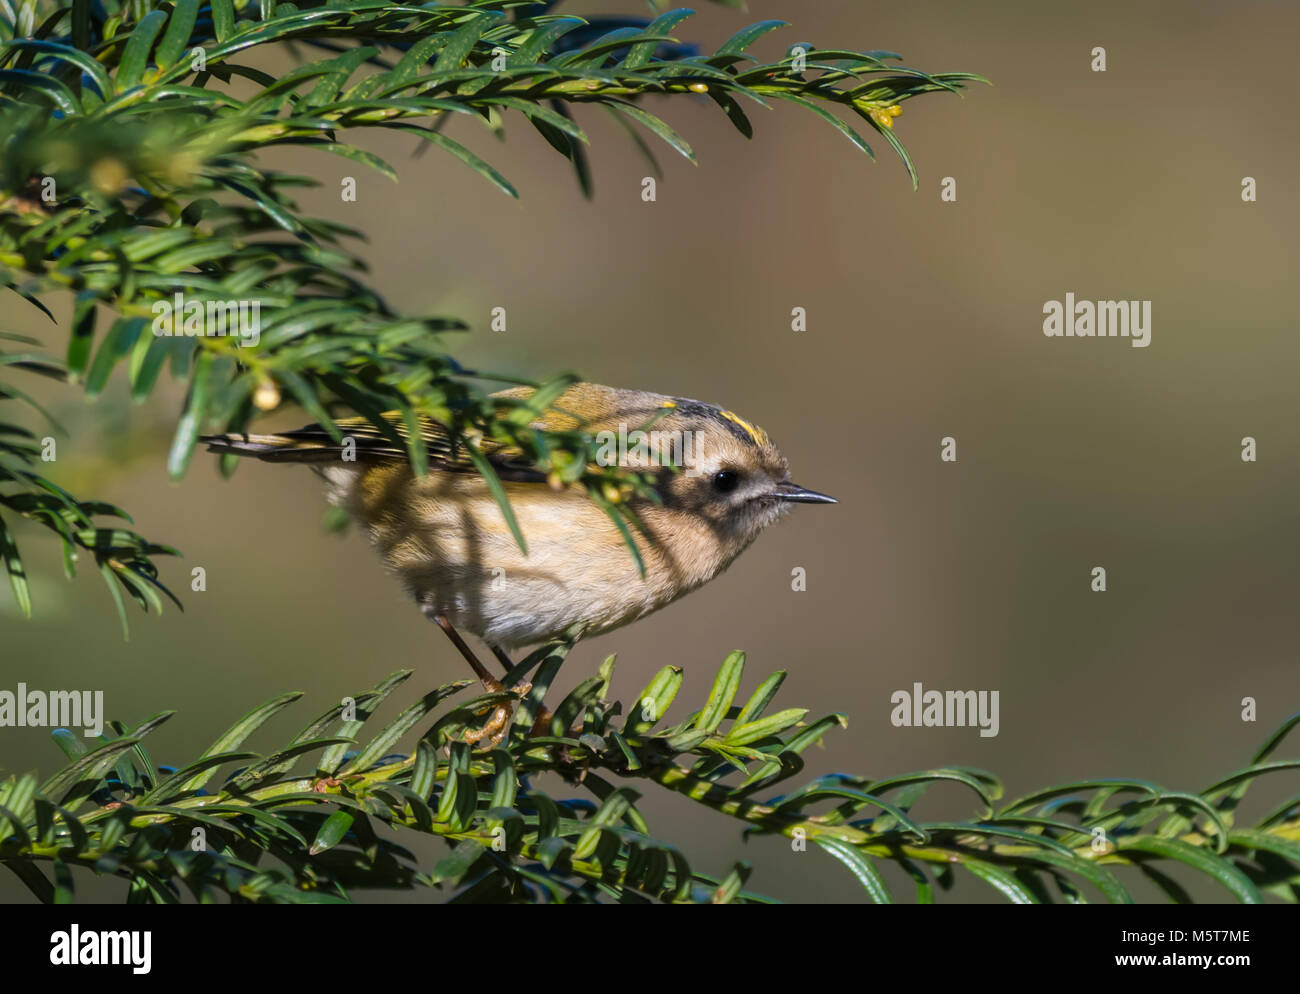 adult-goldcrest-bird-regulus-regulus-perched-in-a-twig-on-a-cold-day-M5T7ME.jpg